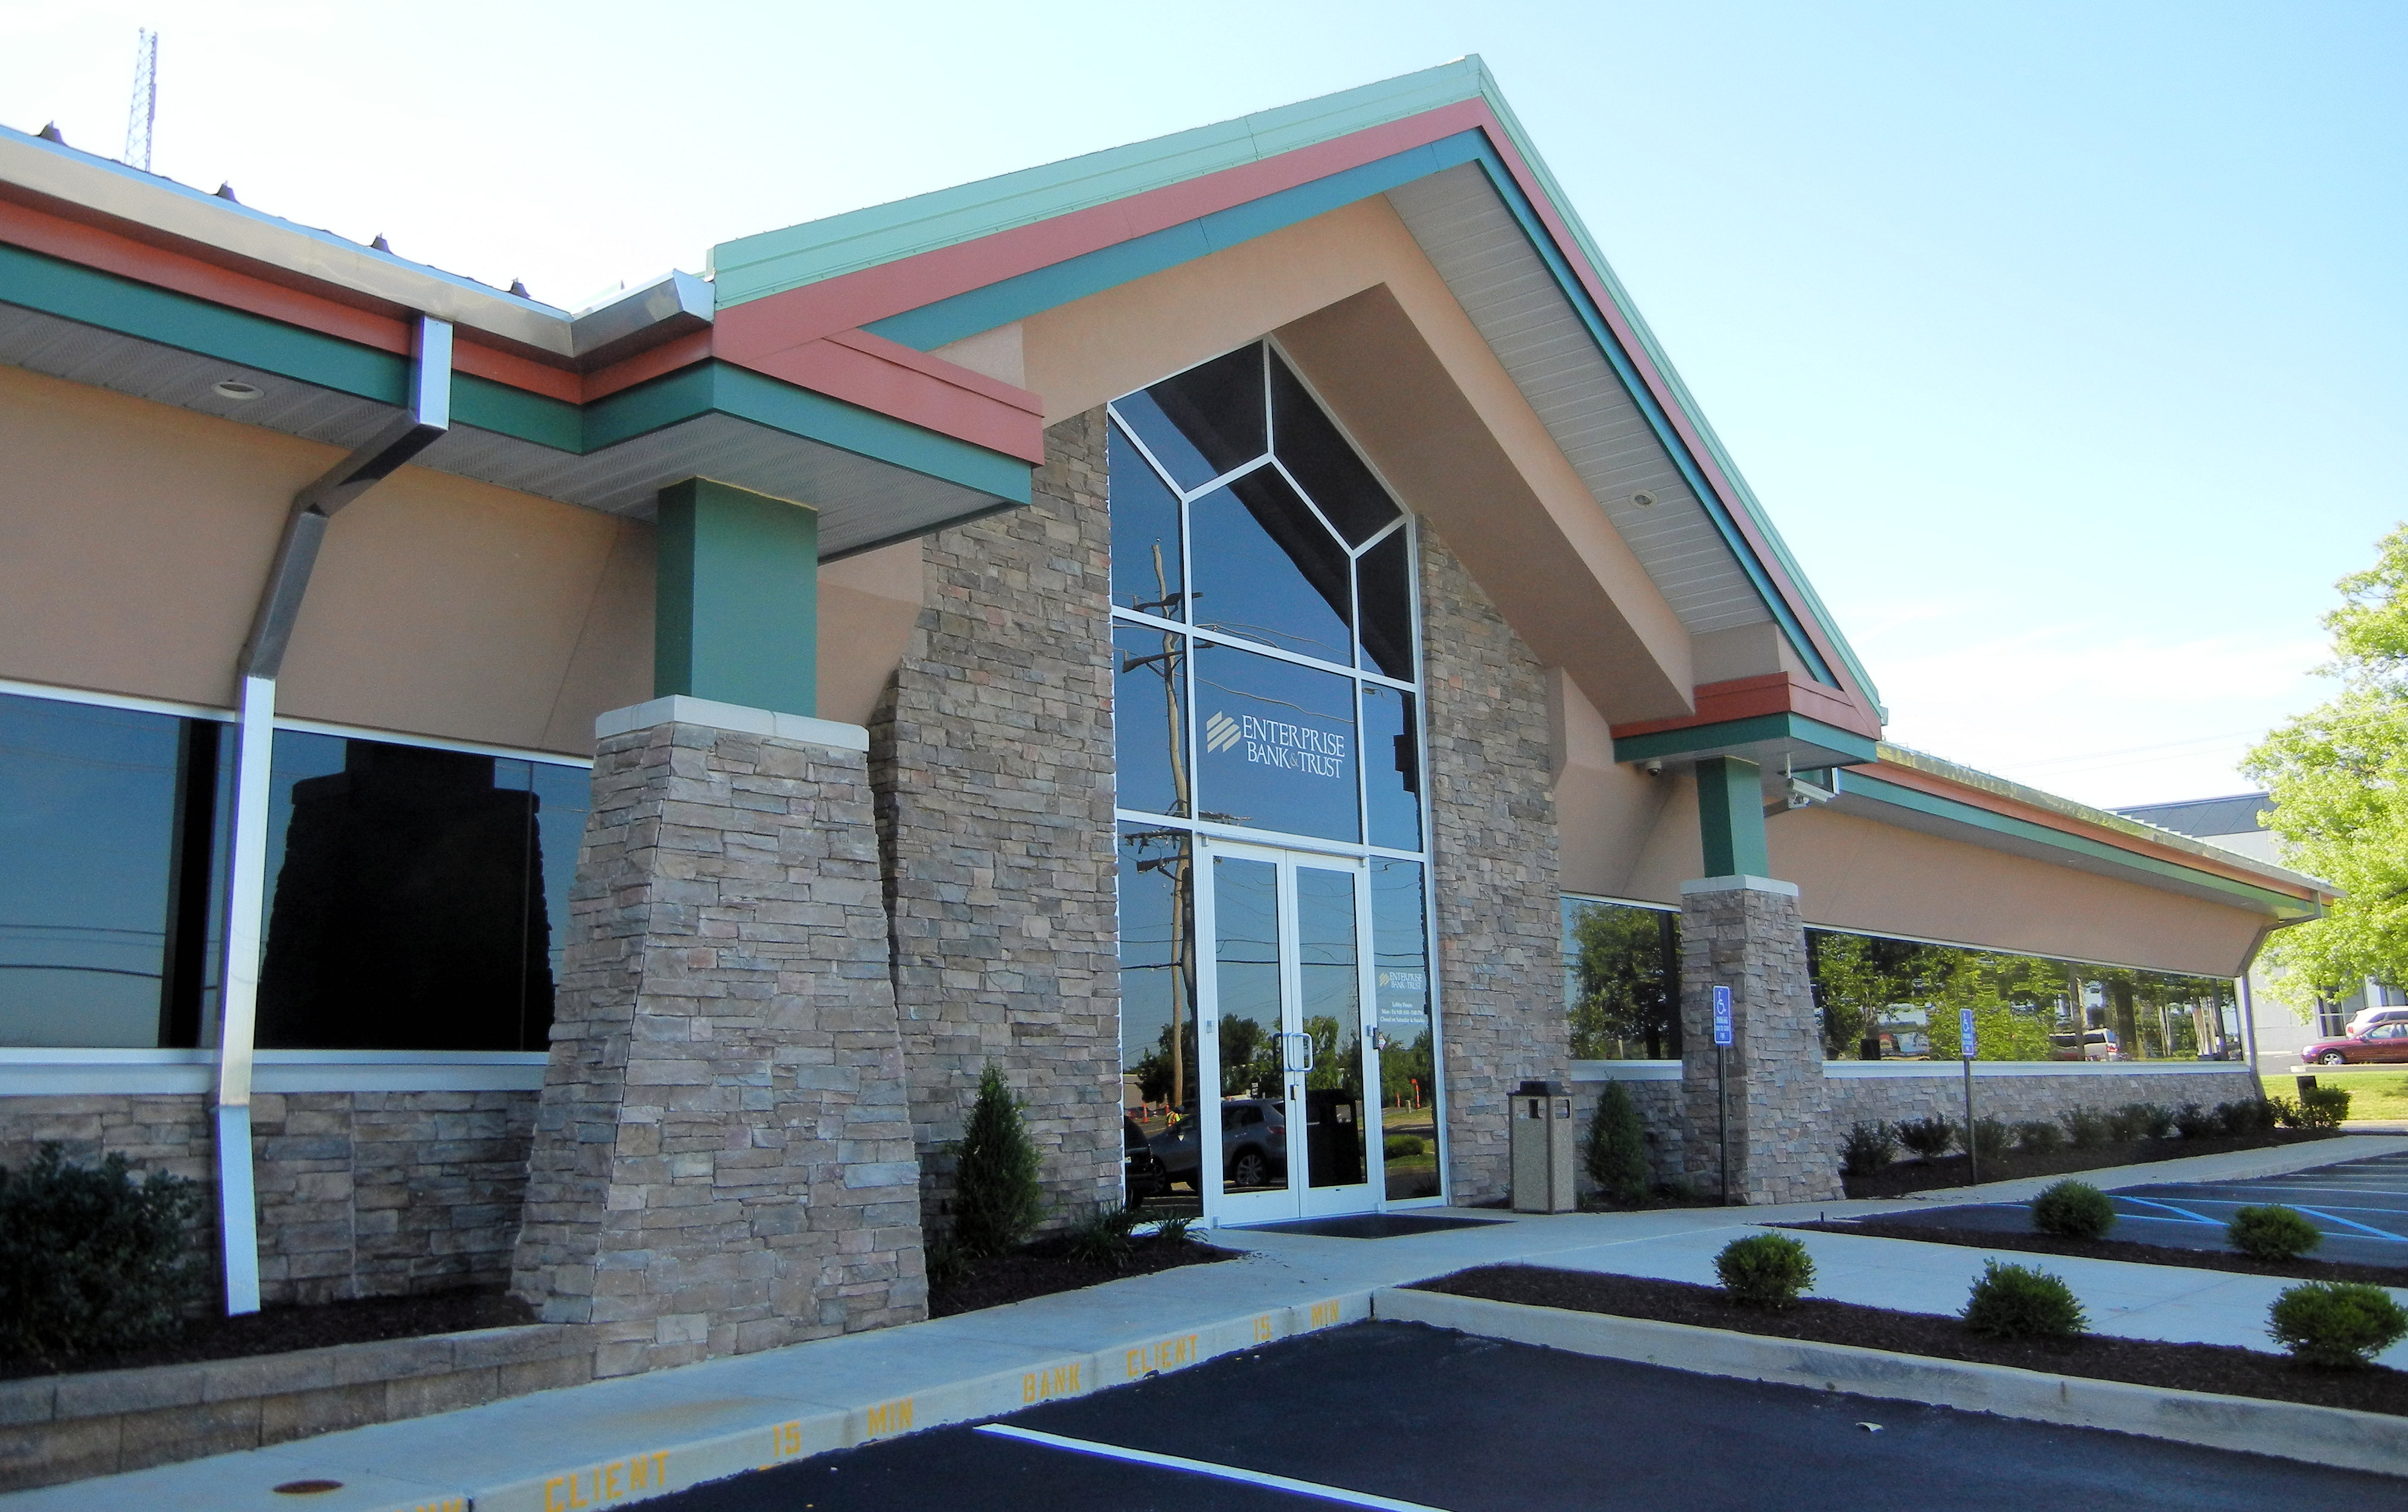 The new Olivette branch is Enterprise's sixth location in the St. Louis area.